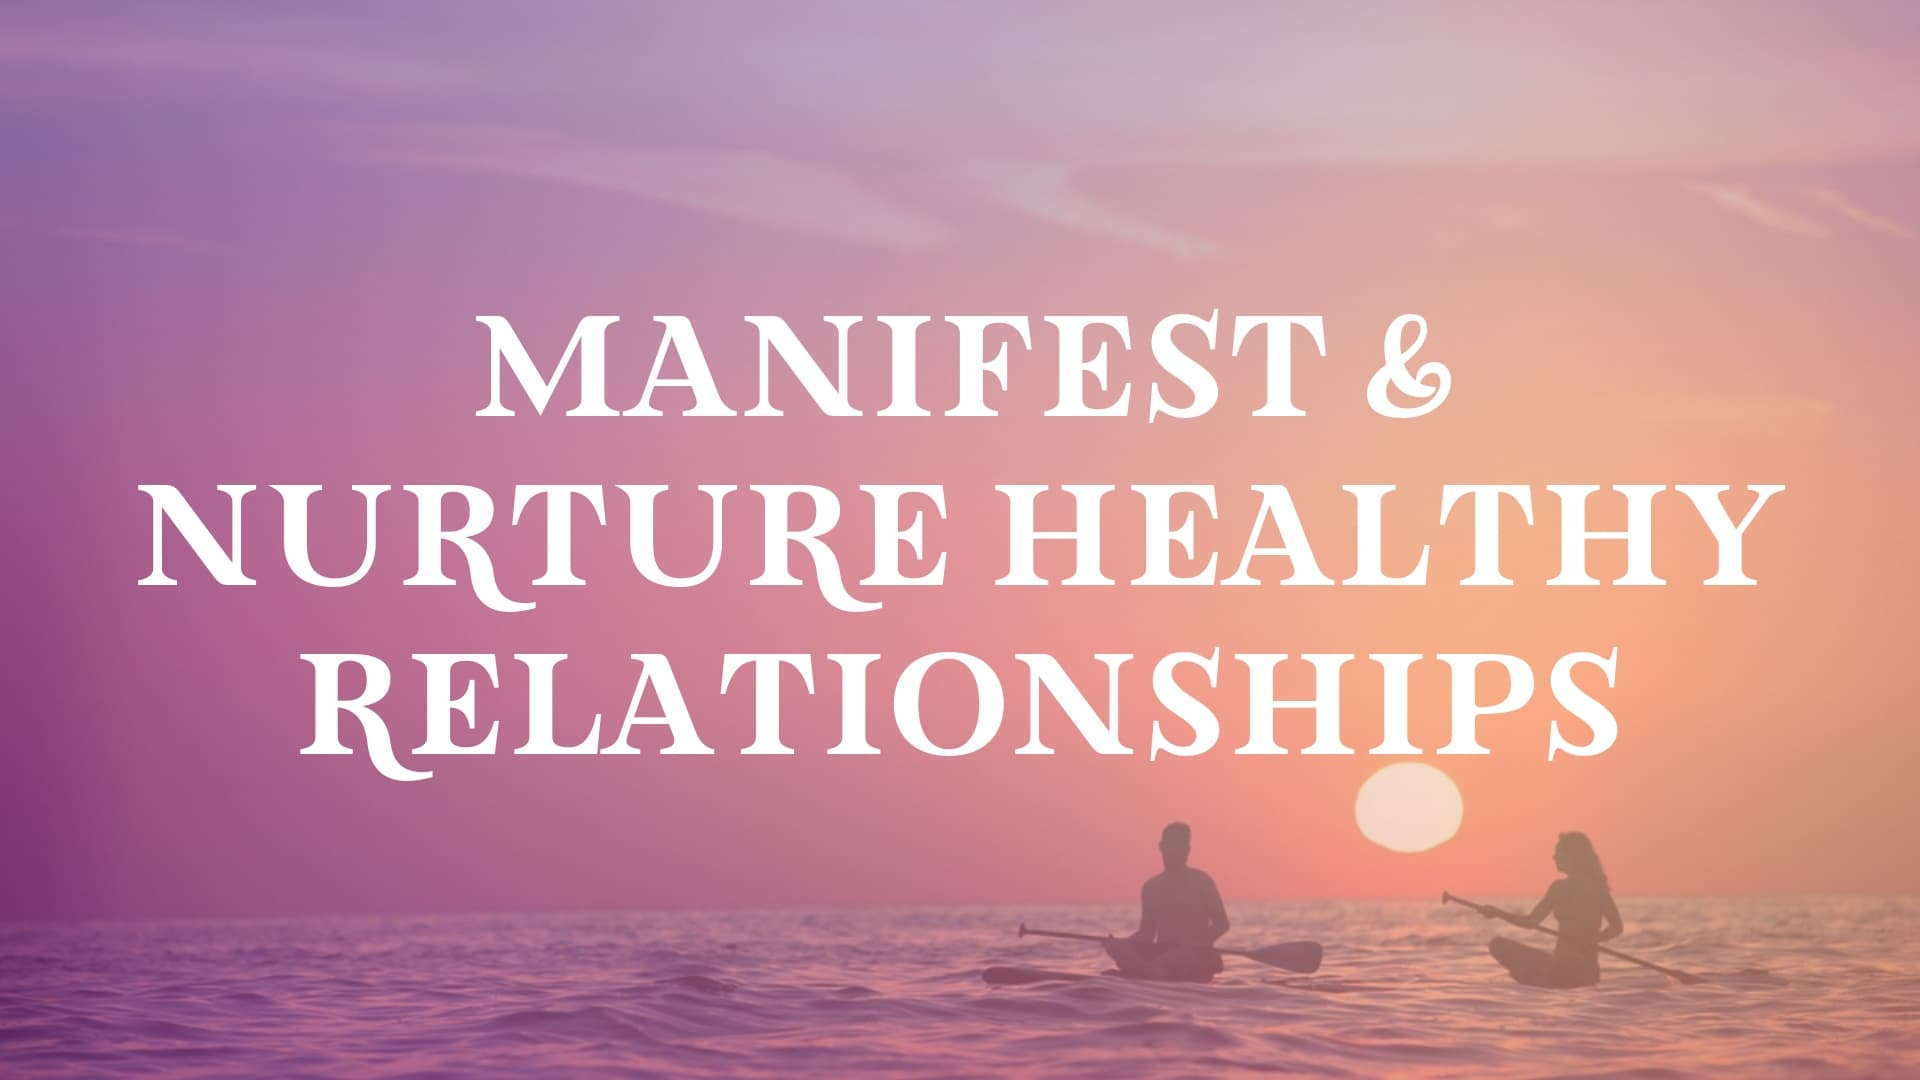 Manifest & Nurture Healthy Relationships